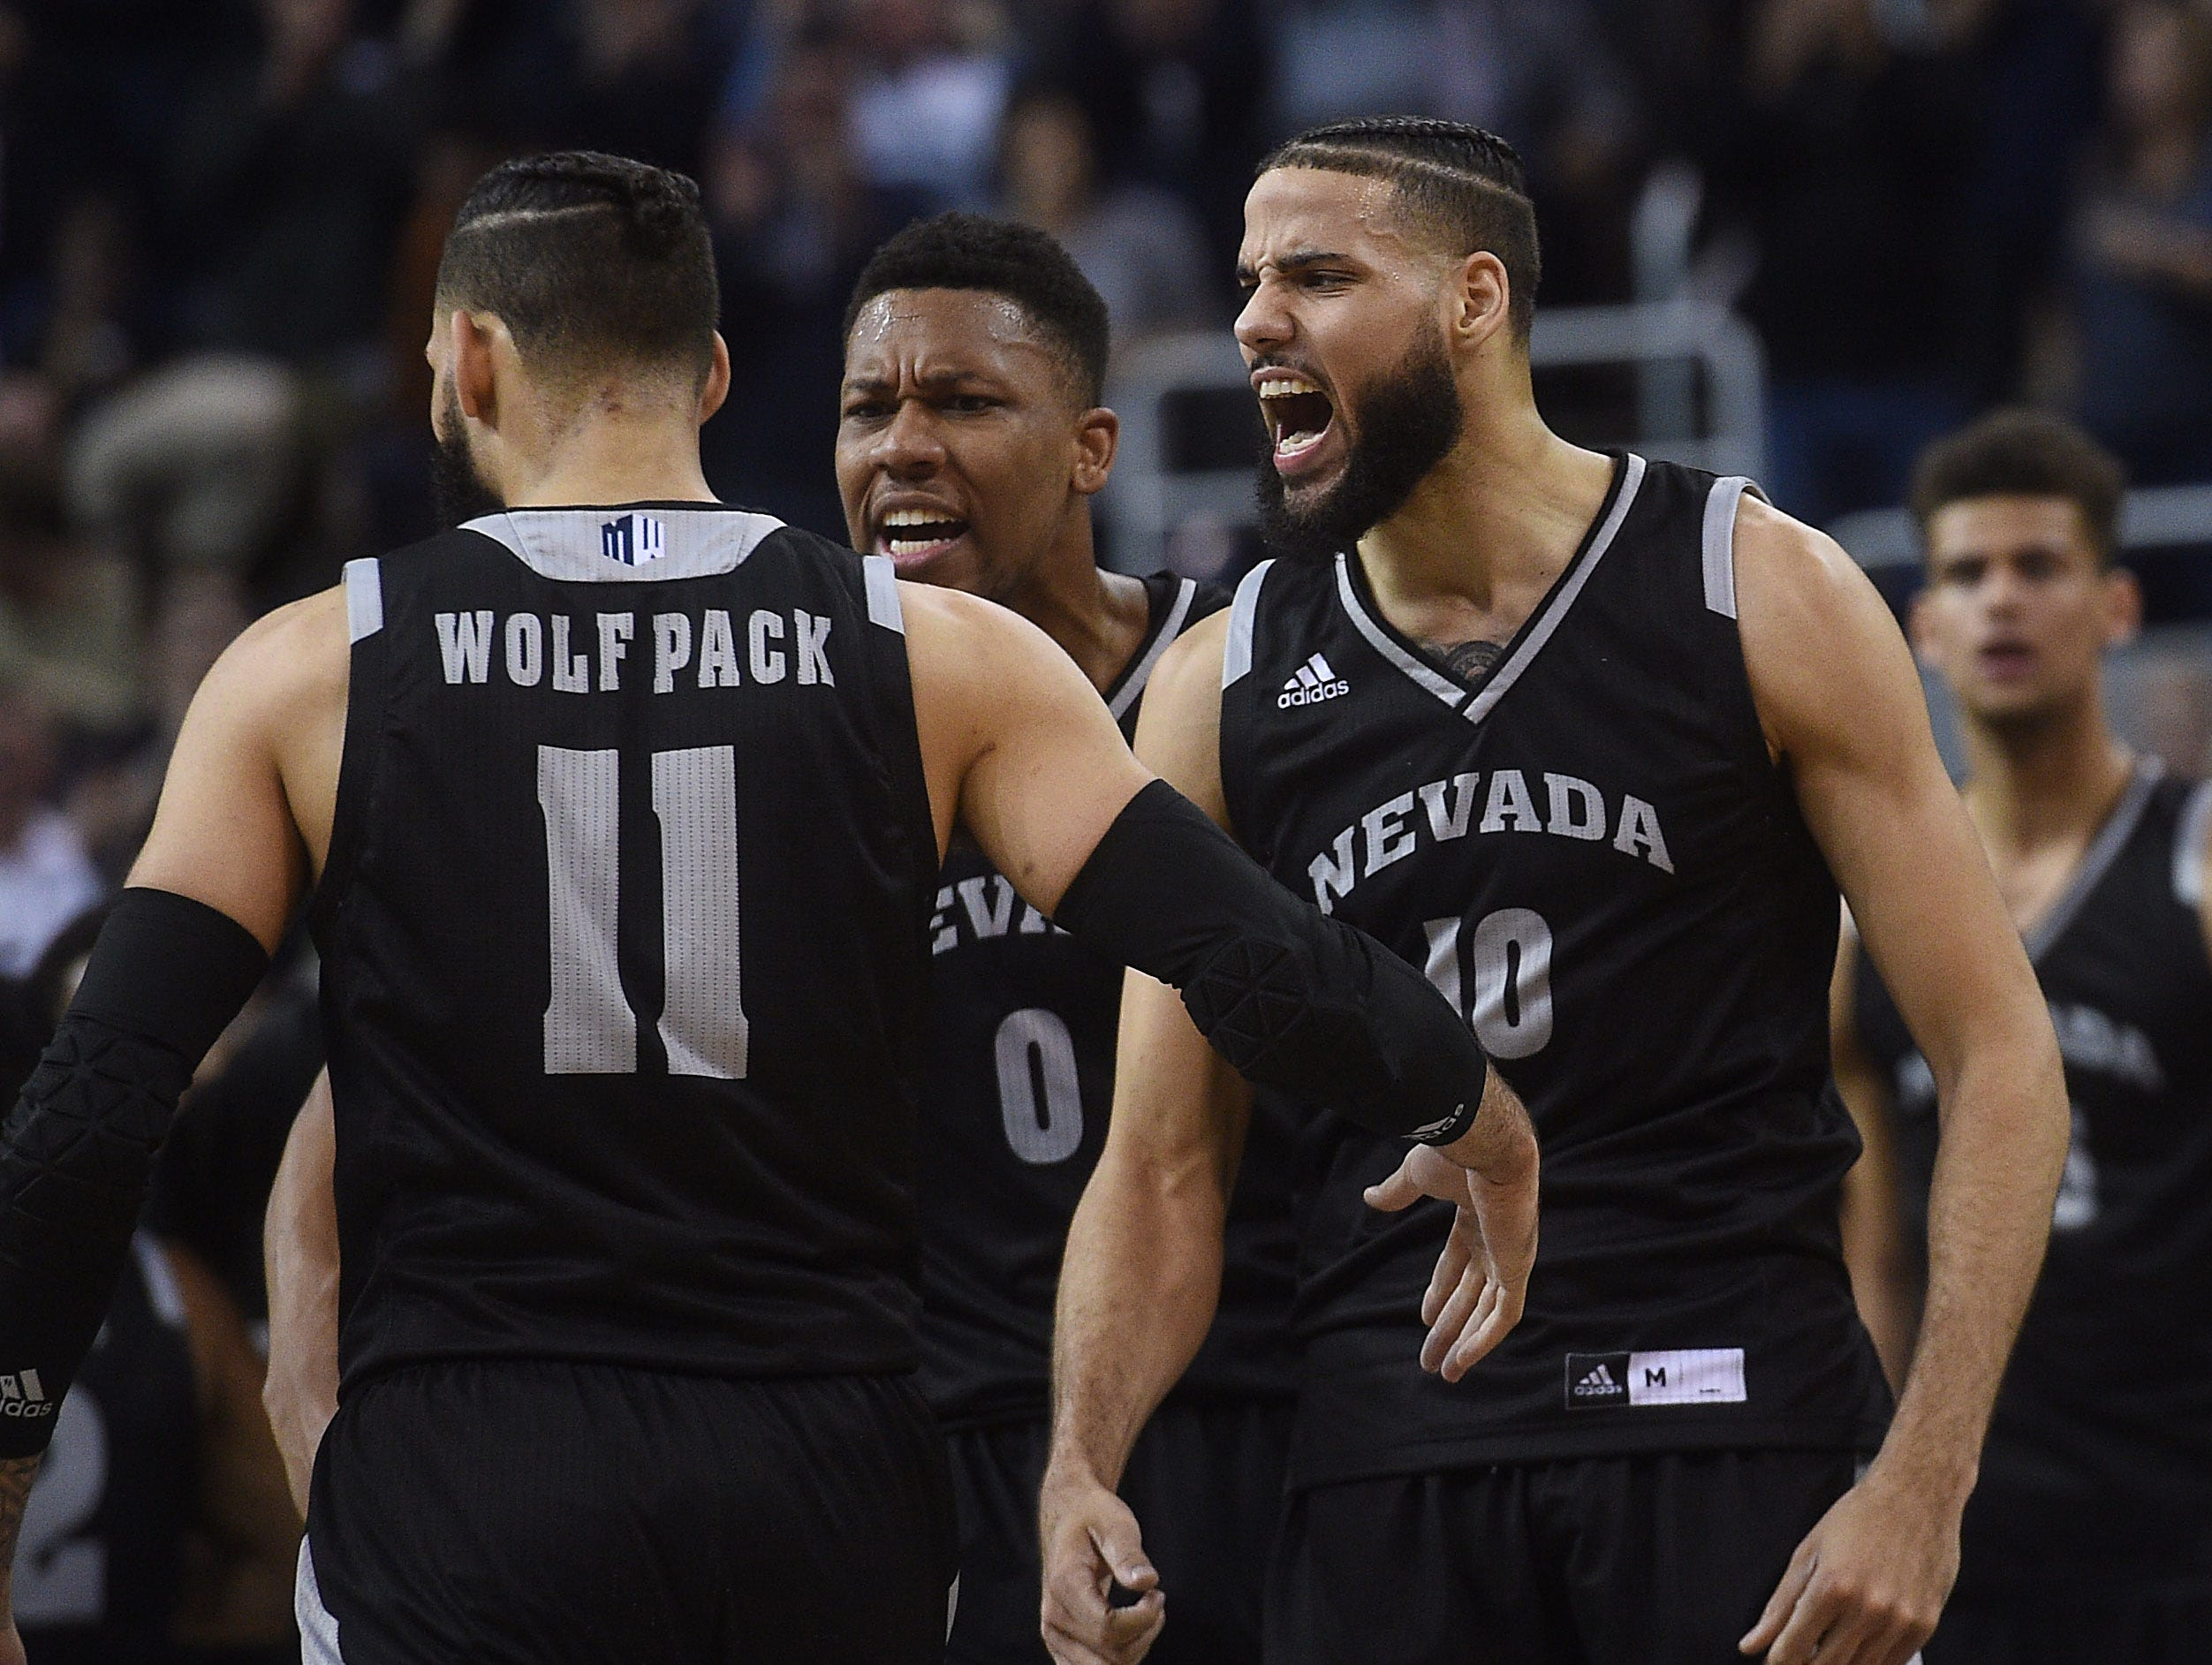 Nevada's Martin twins celebrate while taking on New Mexico at Lawlor Events Center in Reno on Feb. 9, 2019.